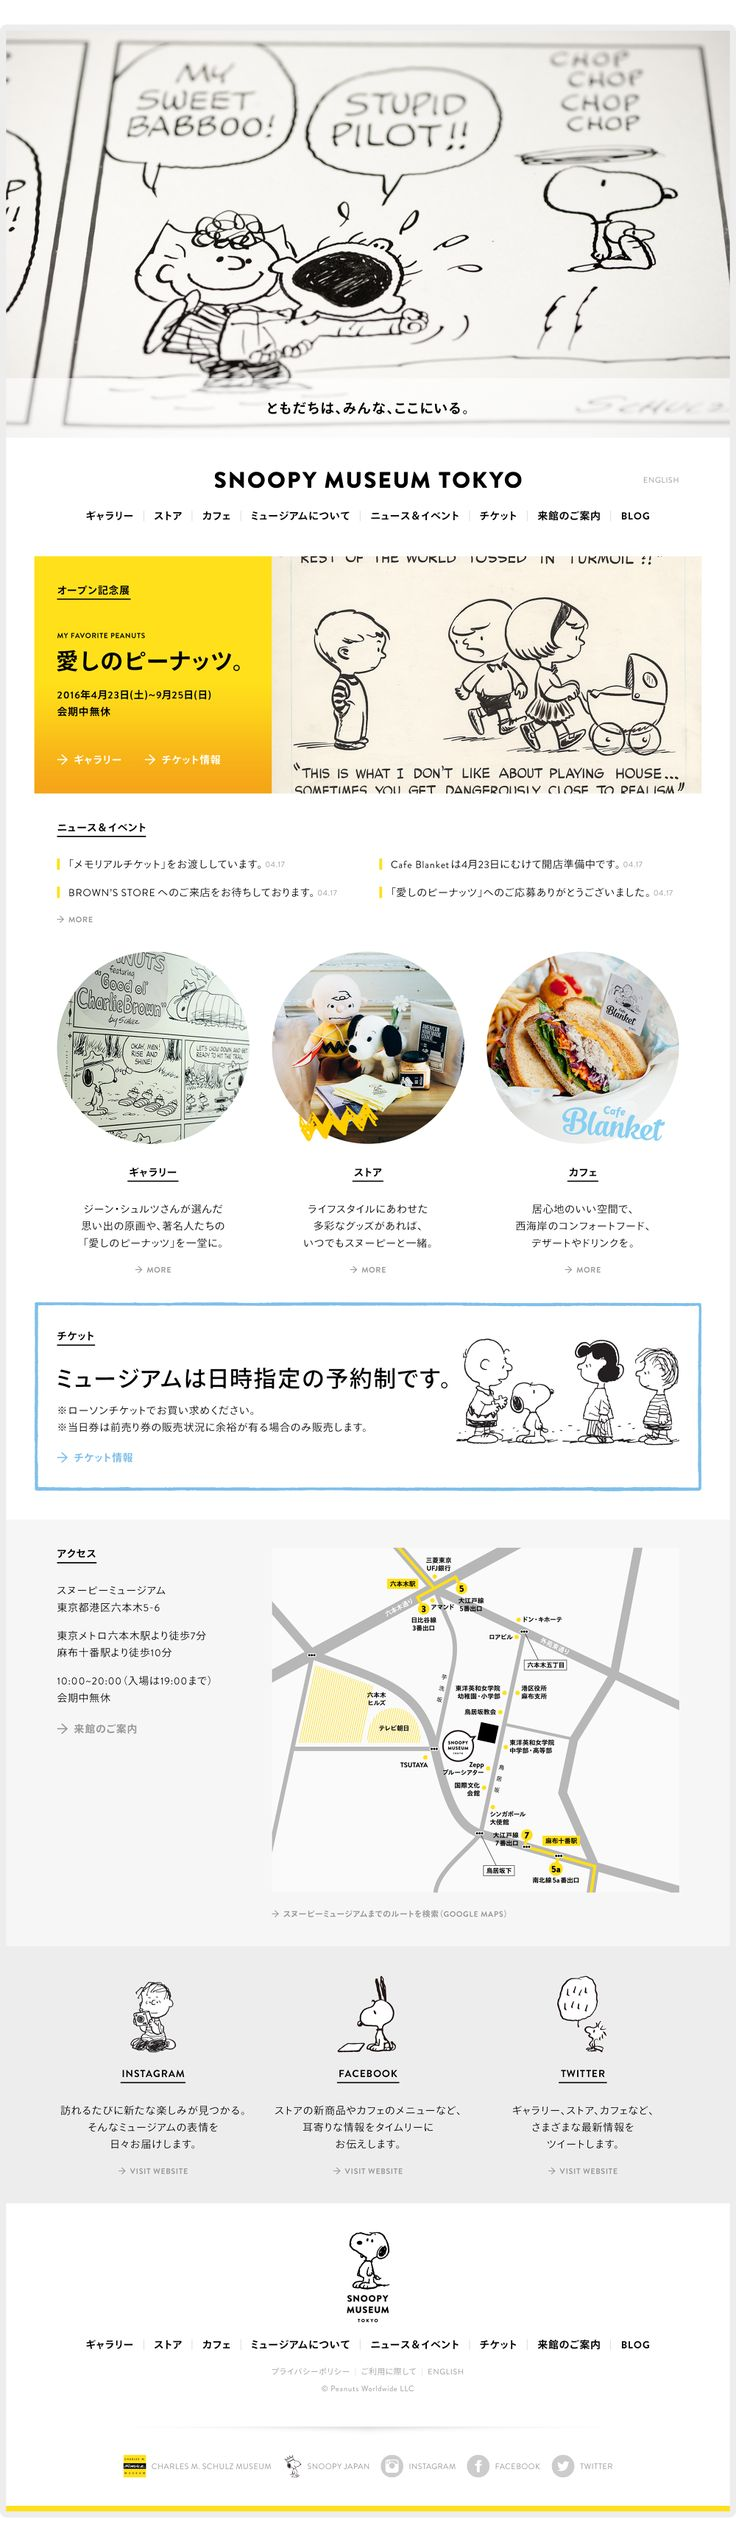 Snoopy Museum Tokyo: Official Website - Pulp, Inc.